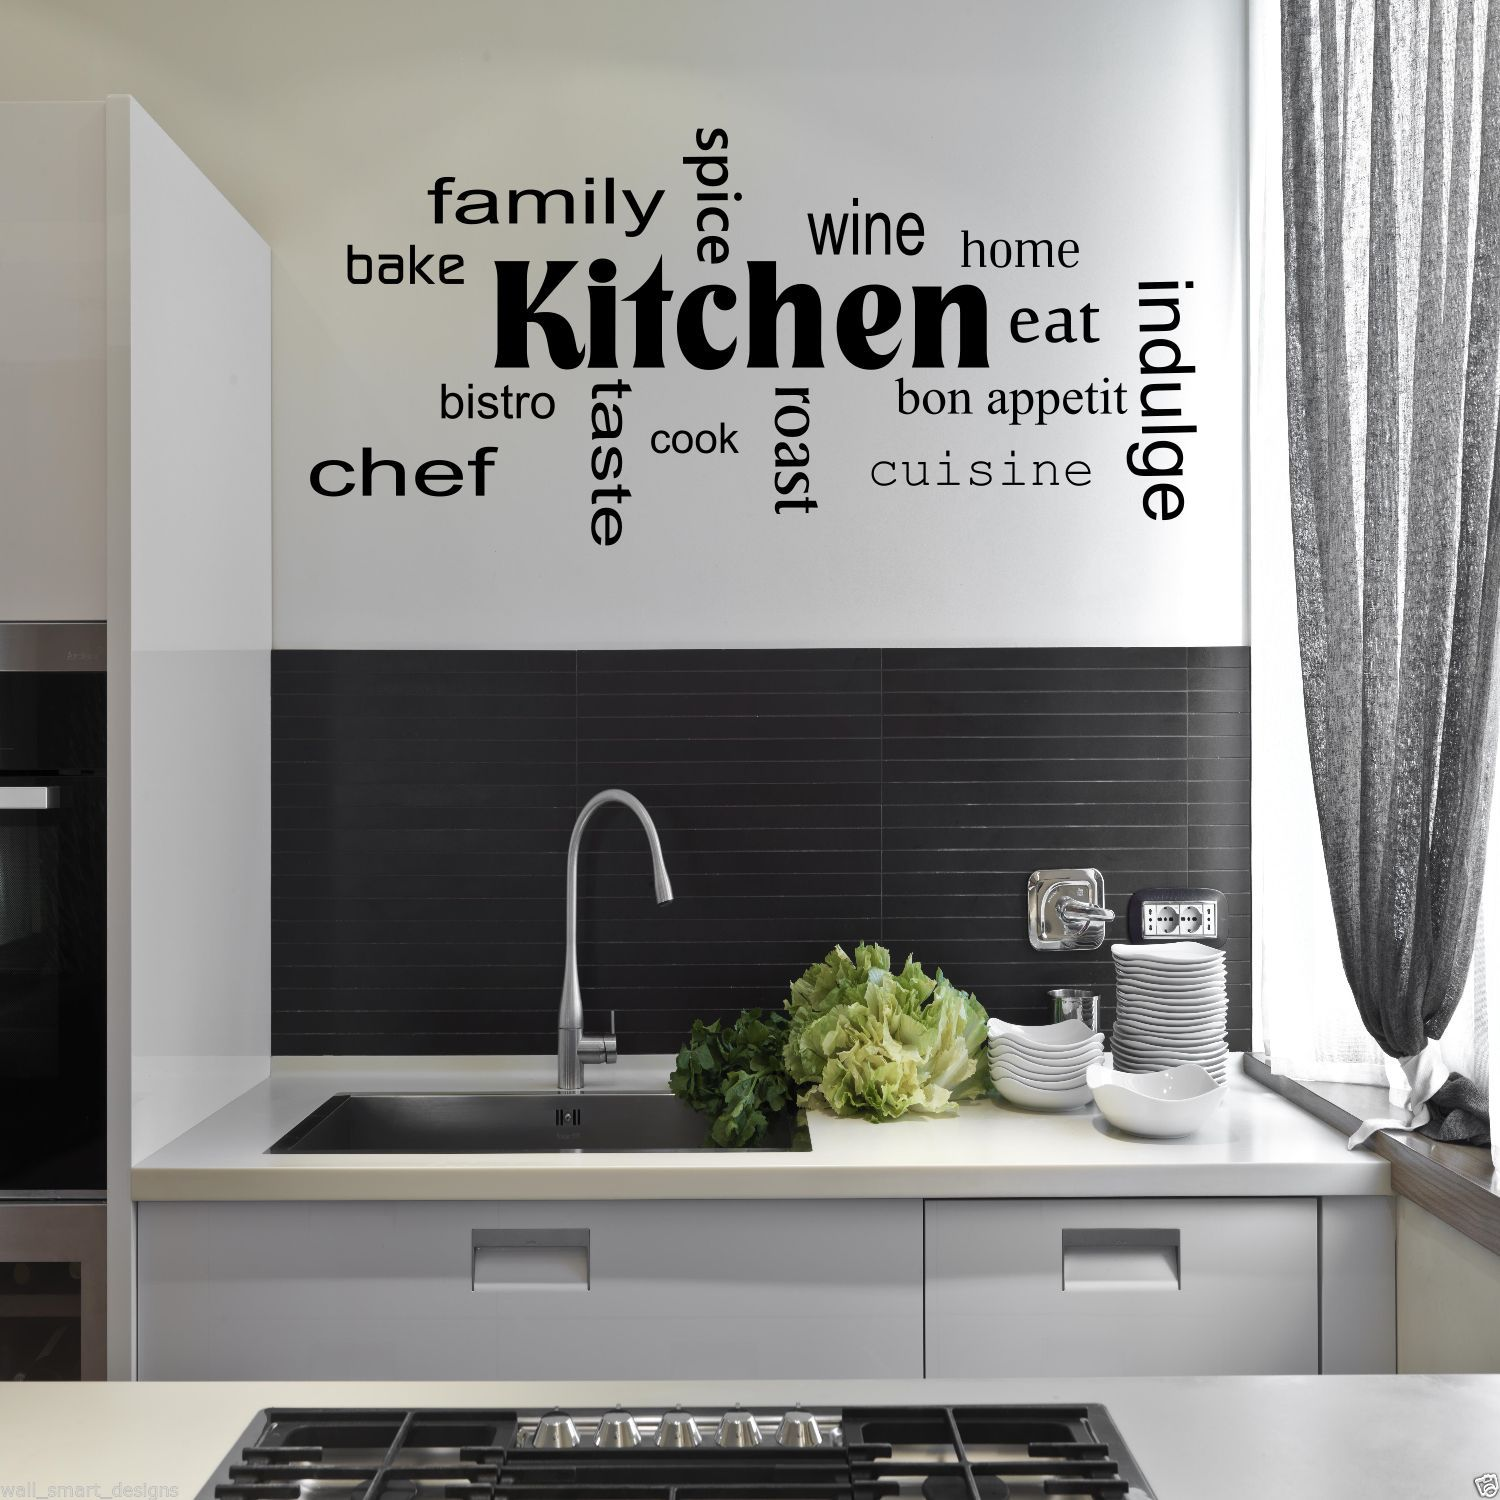 Kitchen Wall Mural Kitchen Words Phrases Wall Art Sticker Quote Decal Mural Stencil